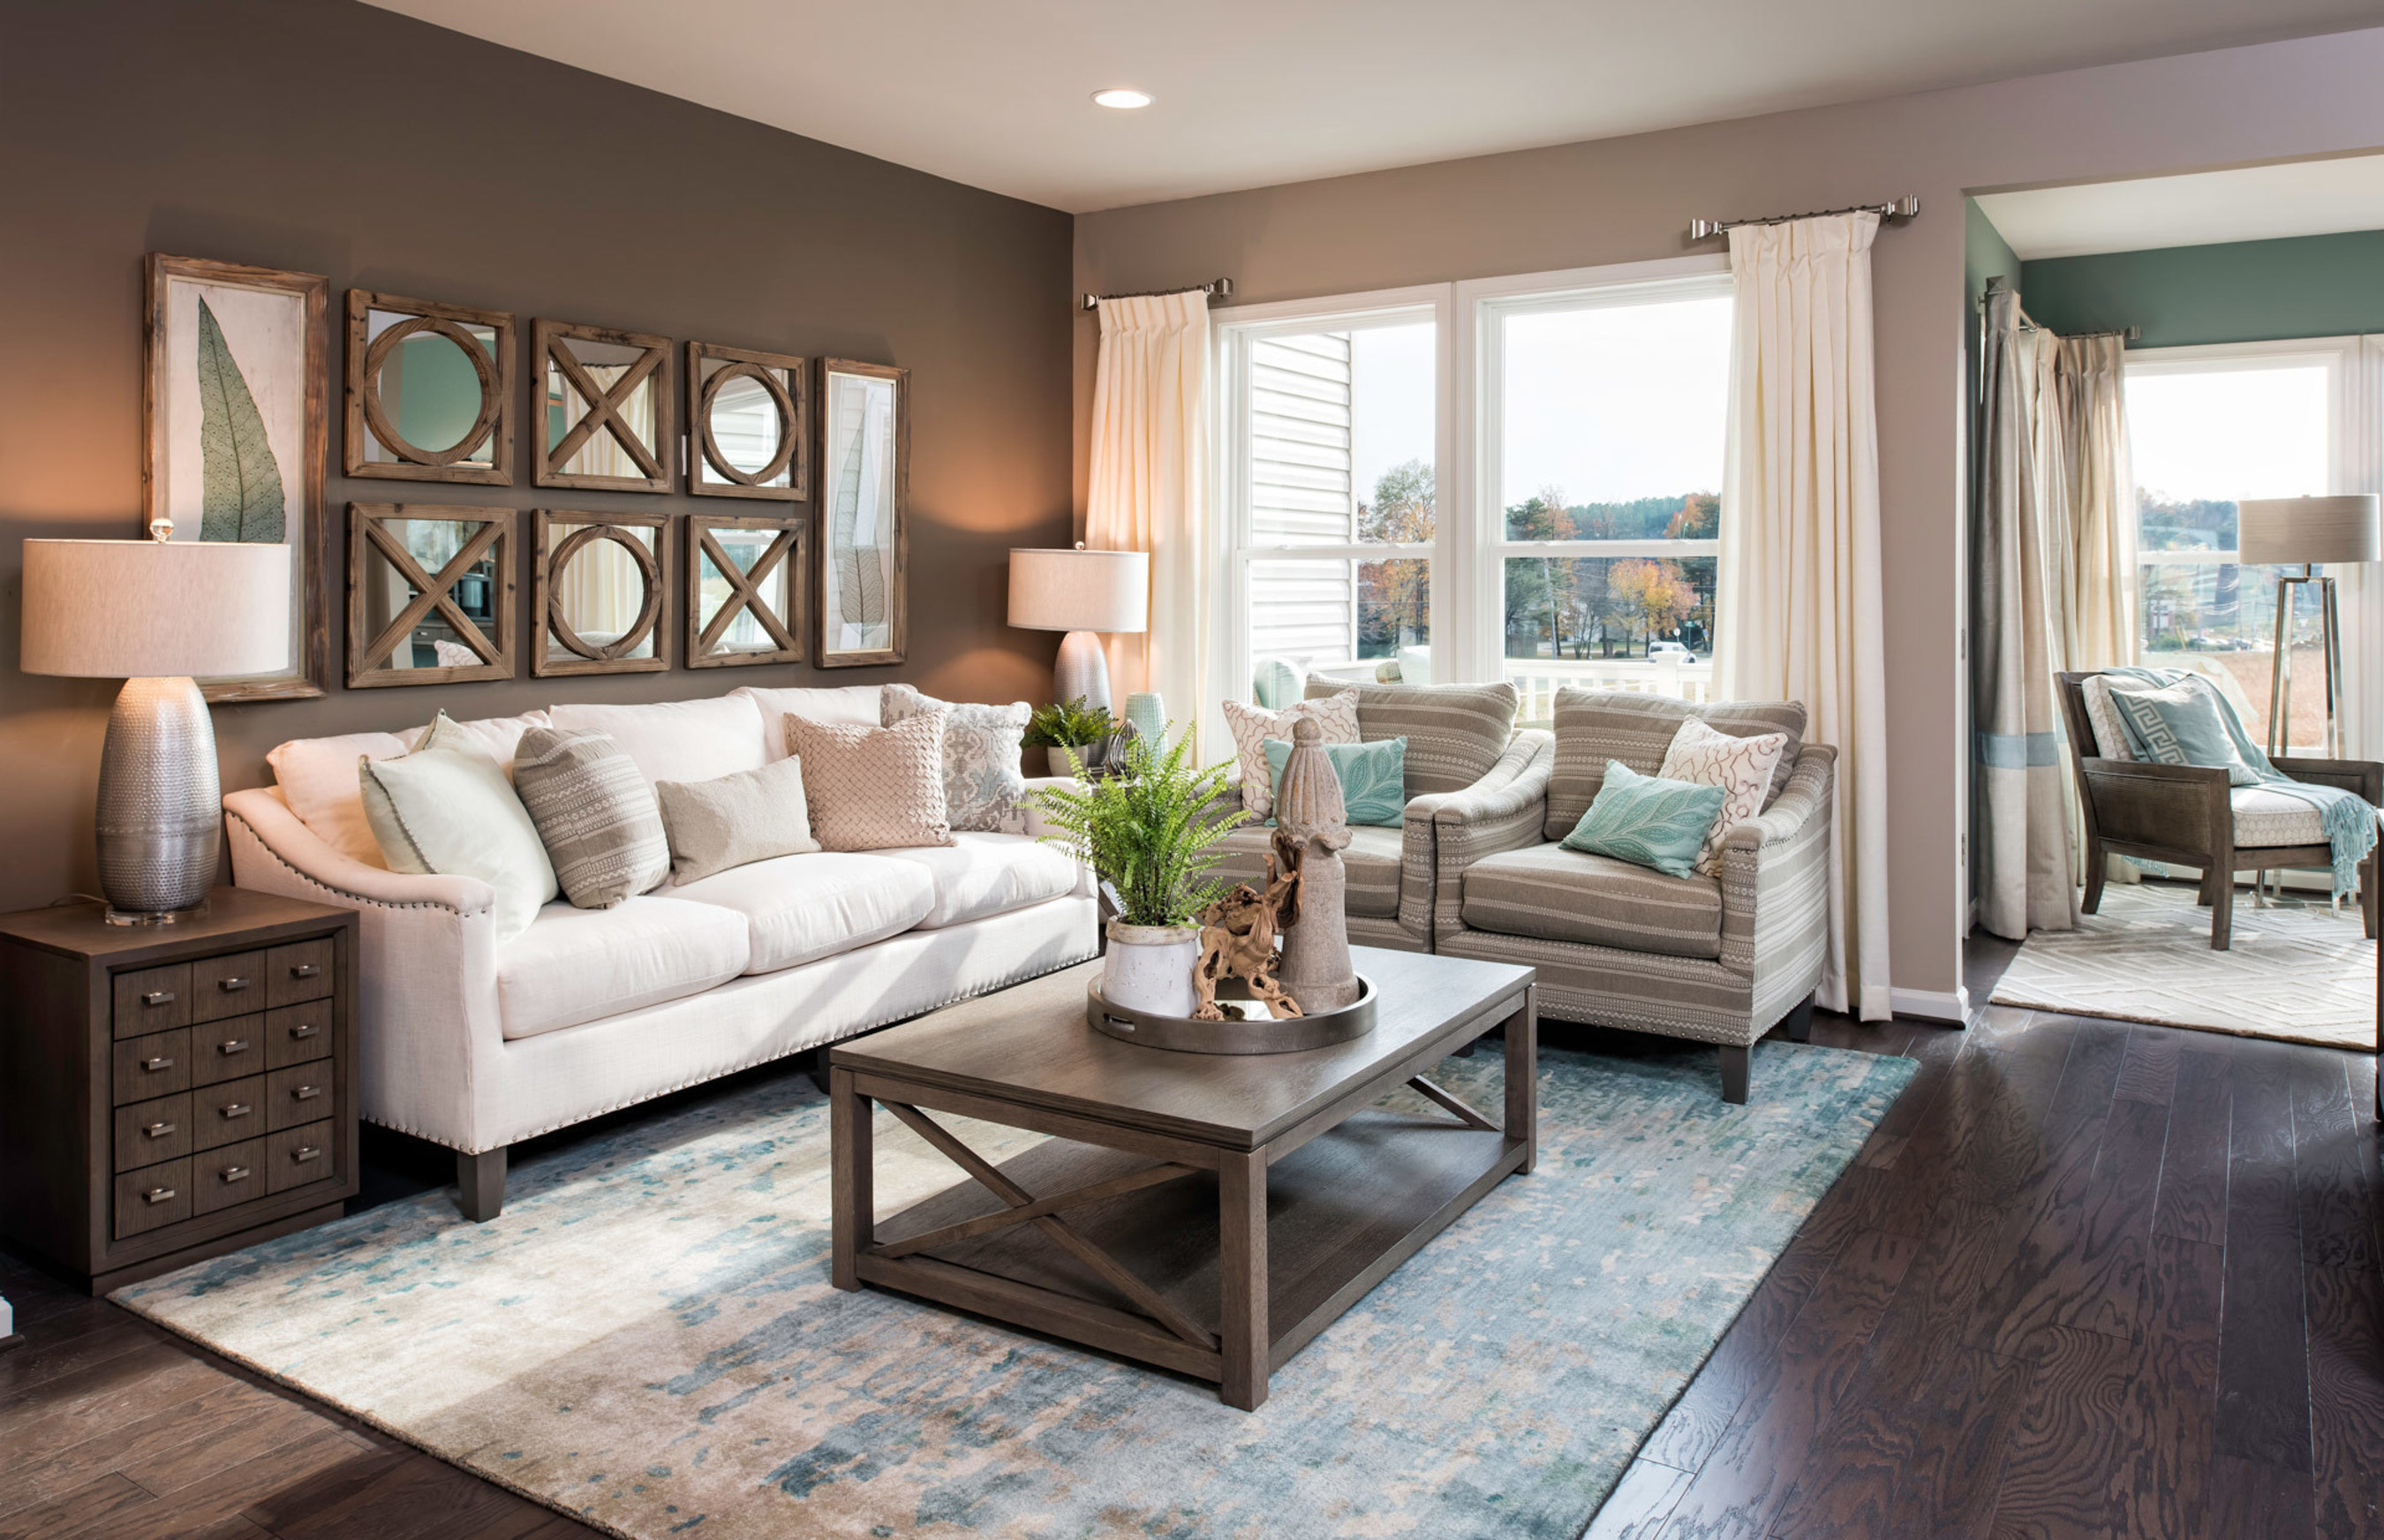 Pultegroup Partners With Lifestyle Personality Rachael Ray To Style New Model Homes